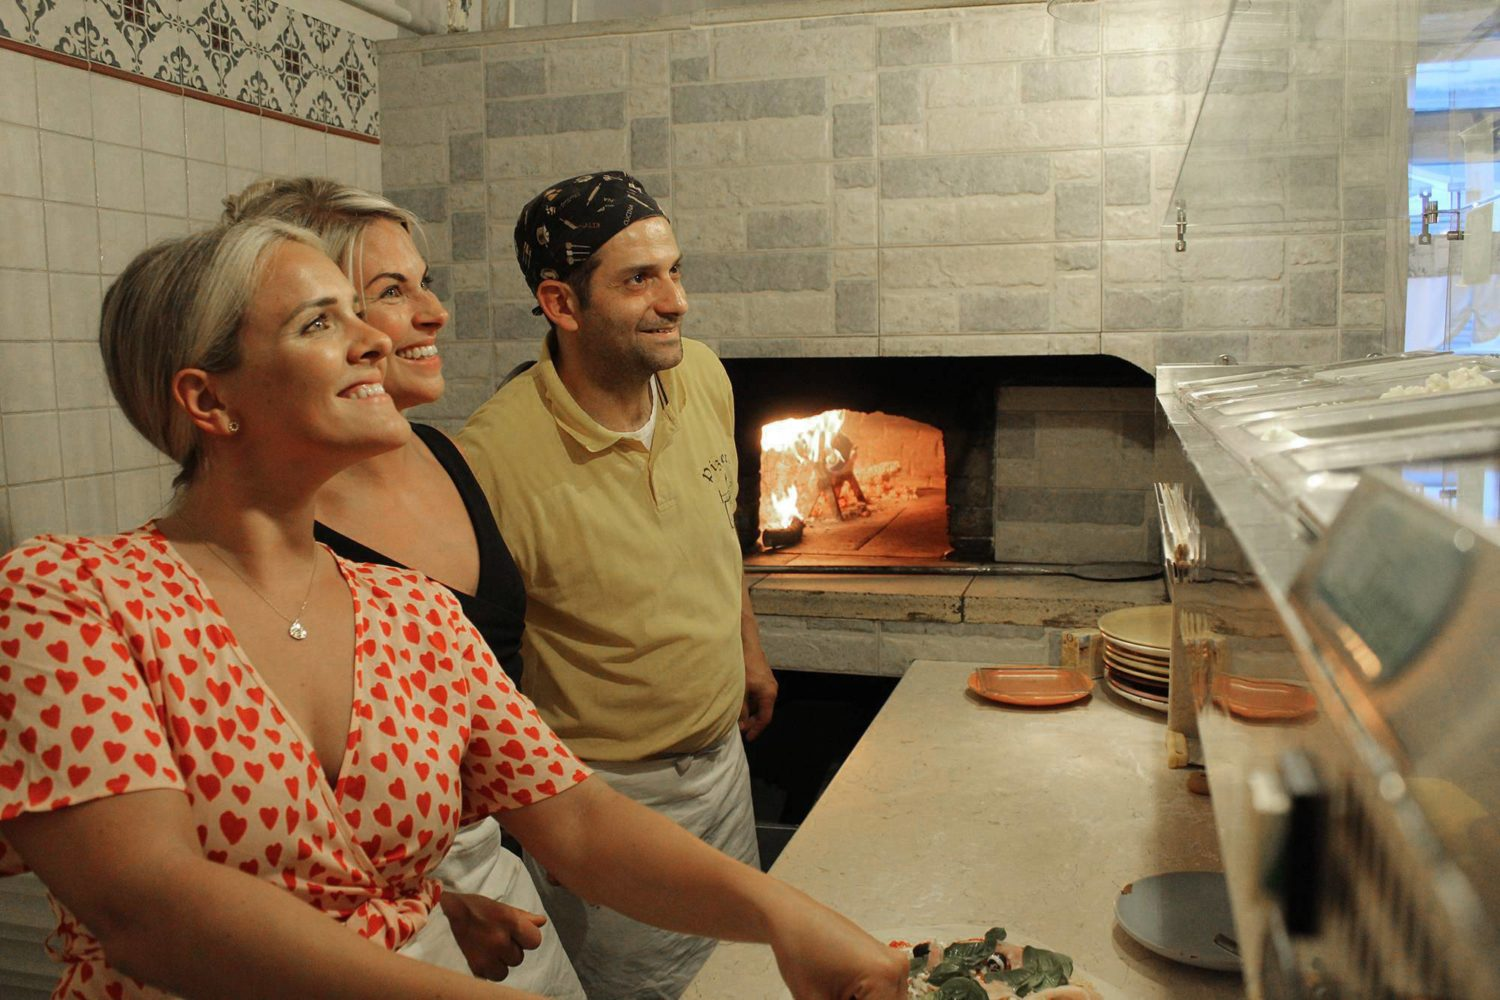 Pizza making experience in Puglia